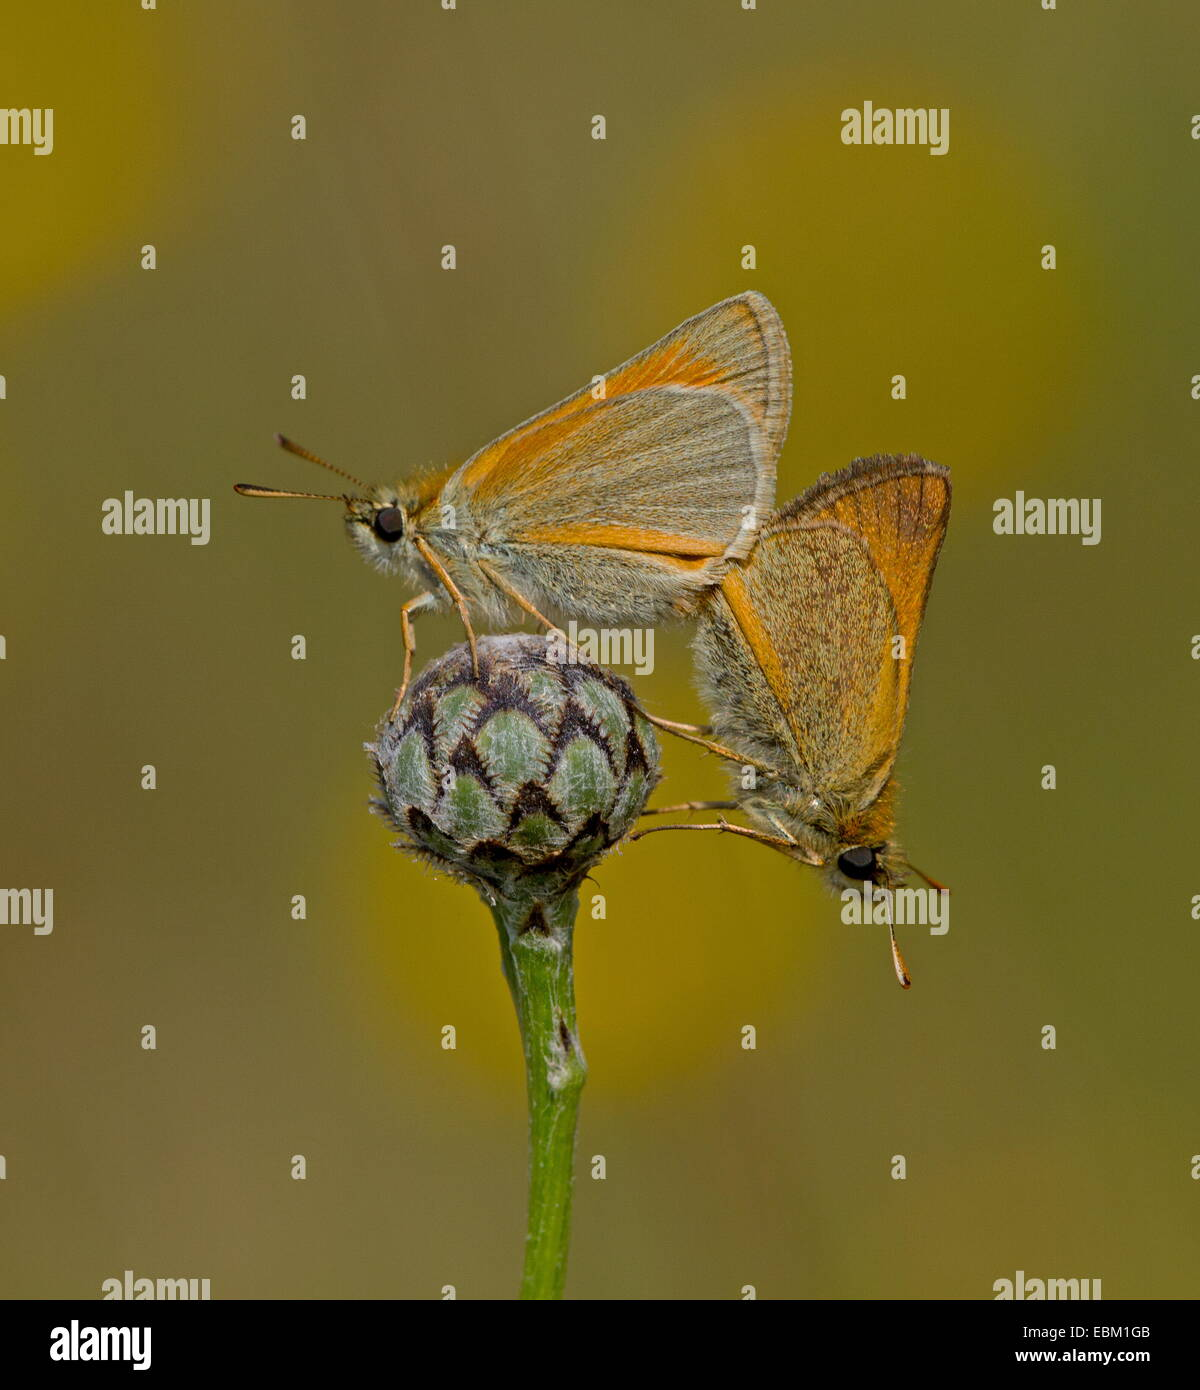 Mating pair of Small Skippers - Stock Image